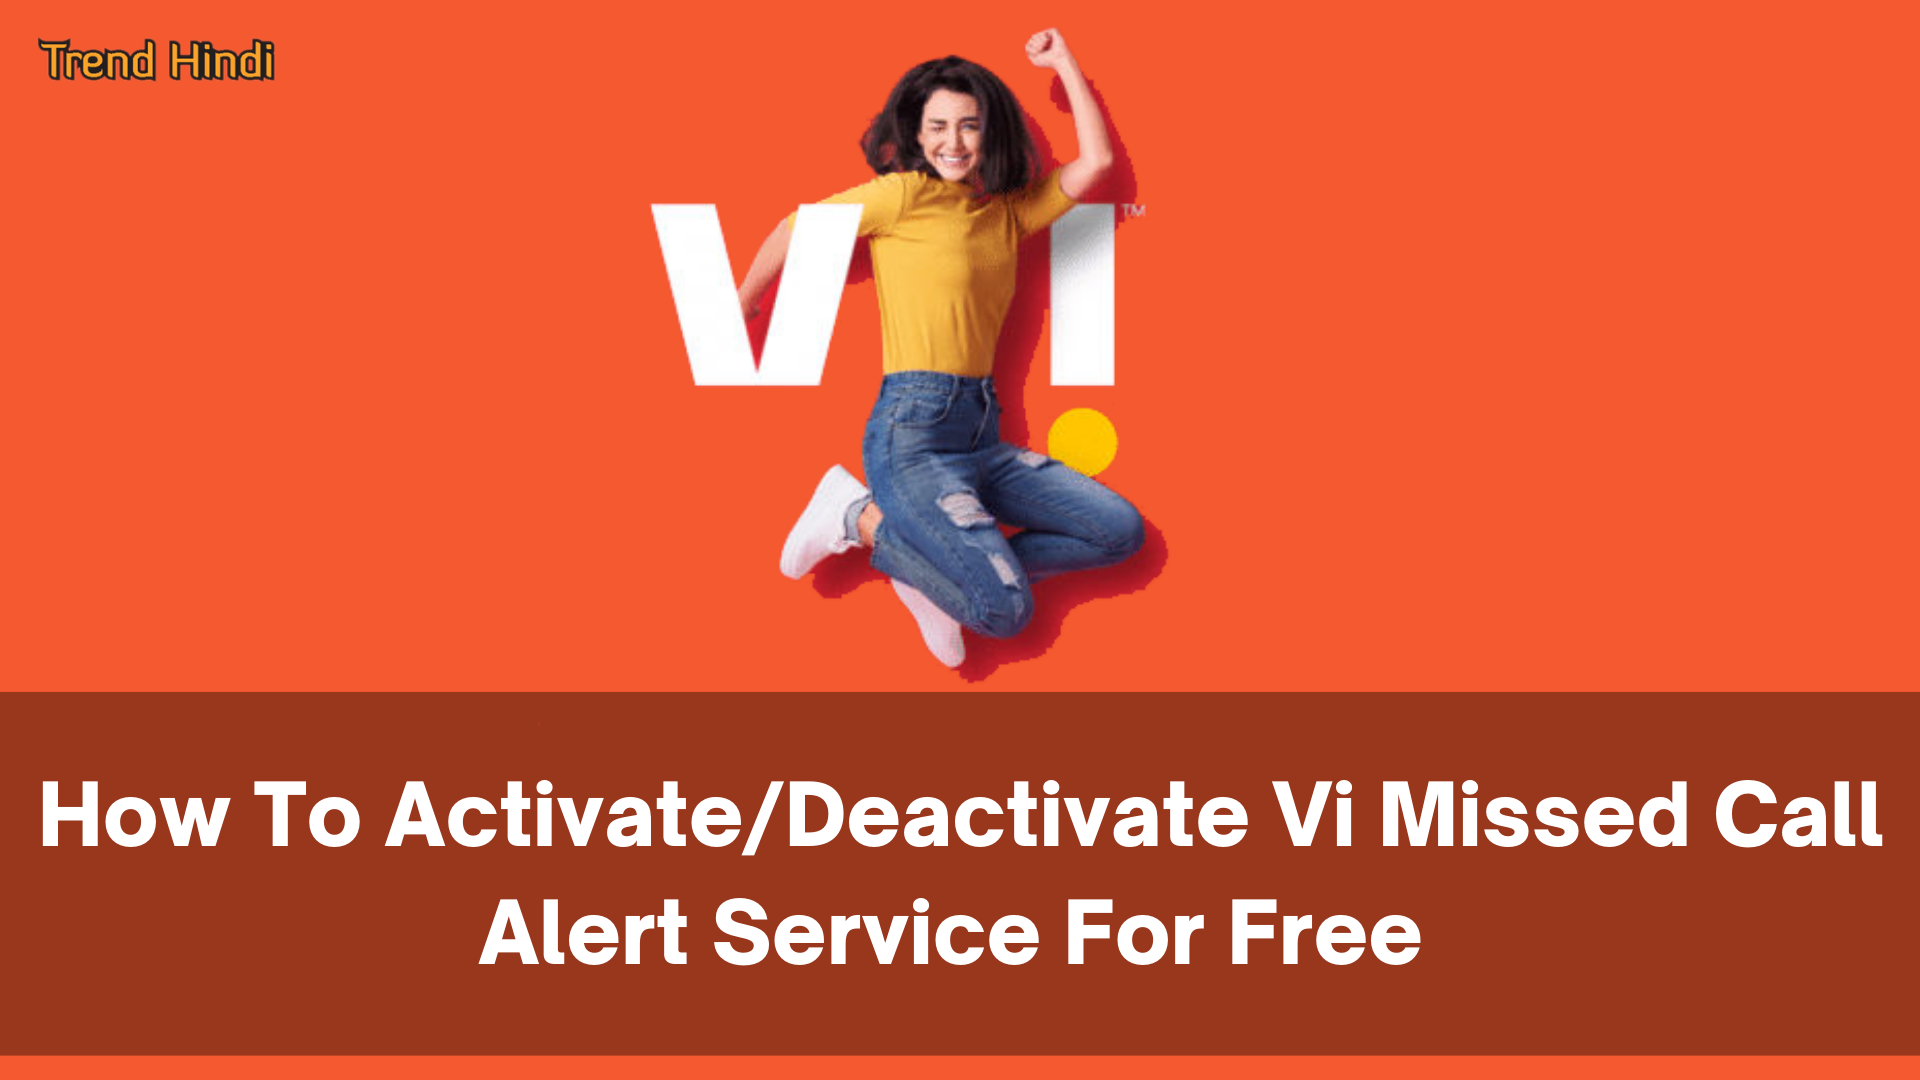 How To Activate/Deactivate Vi Missed Call Alert Service For Free